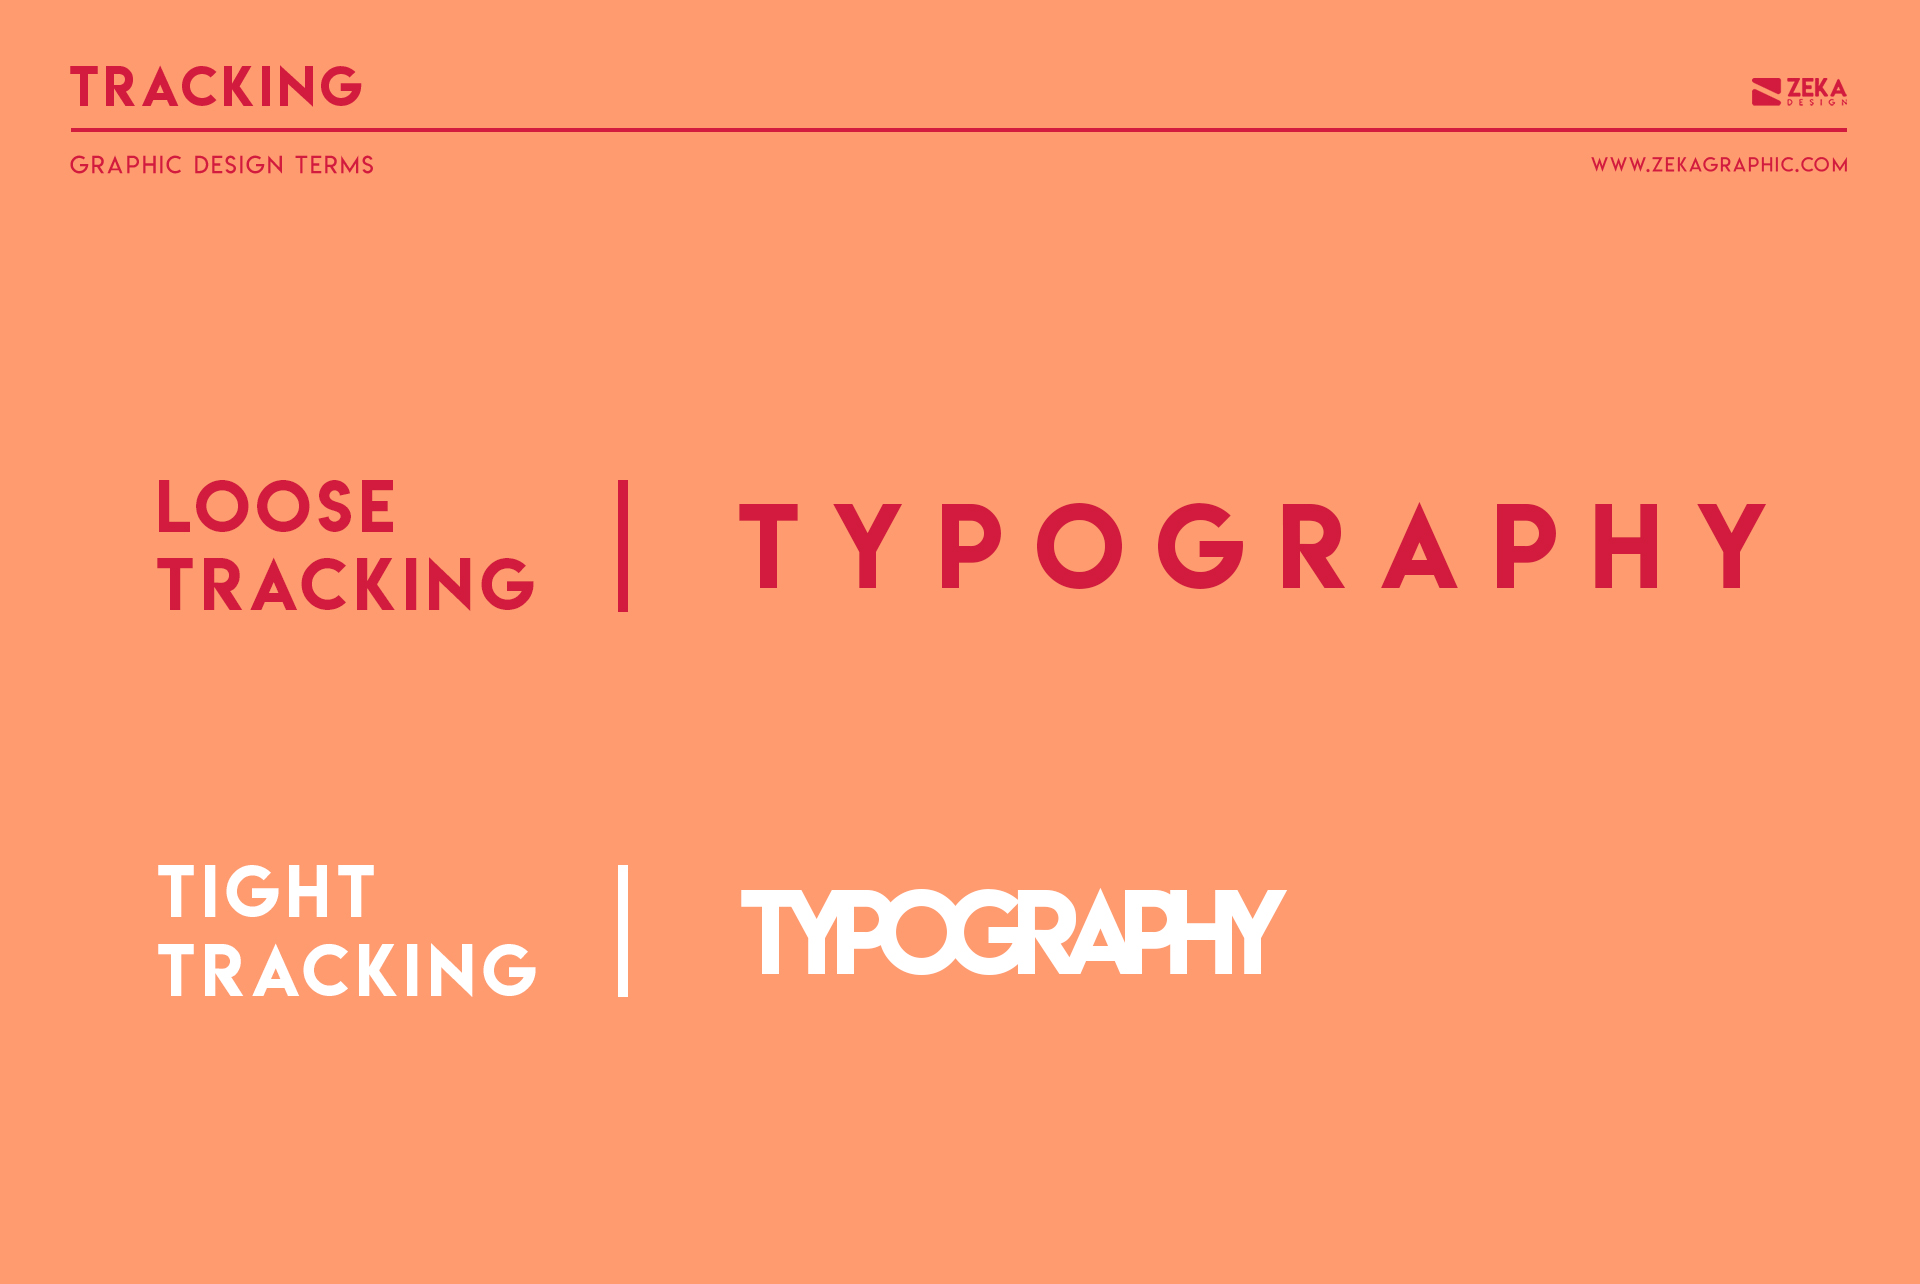 Tracking Typography Graphic Design Terms